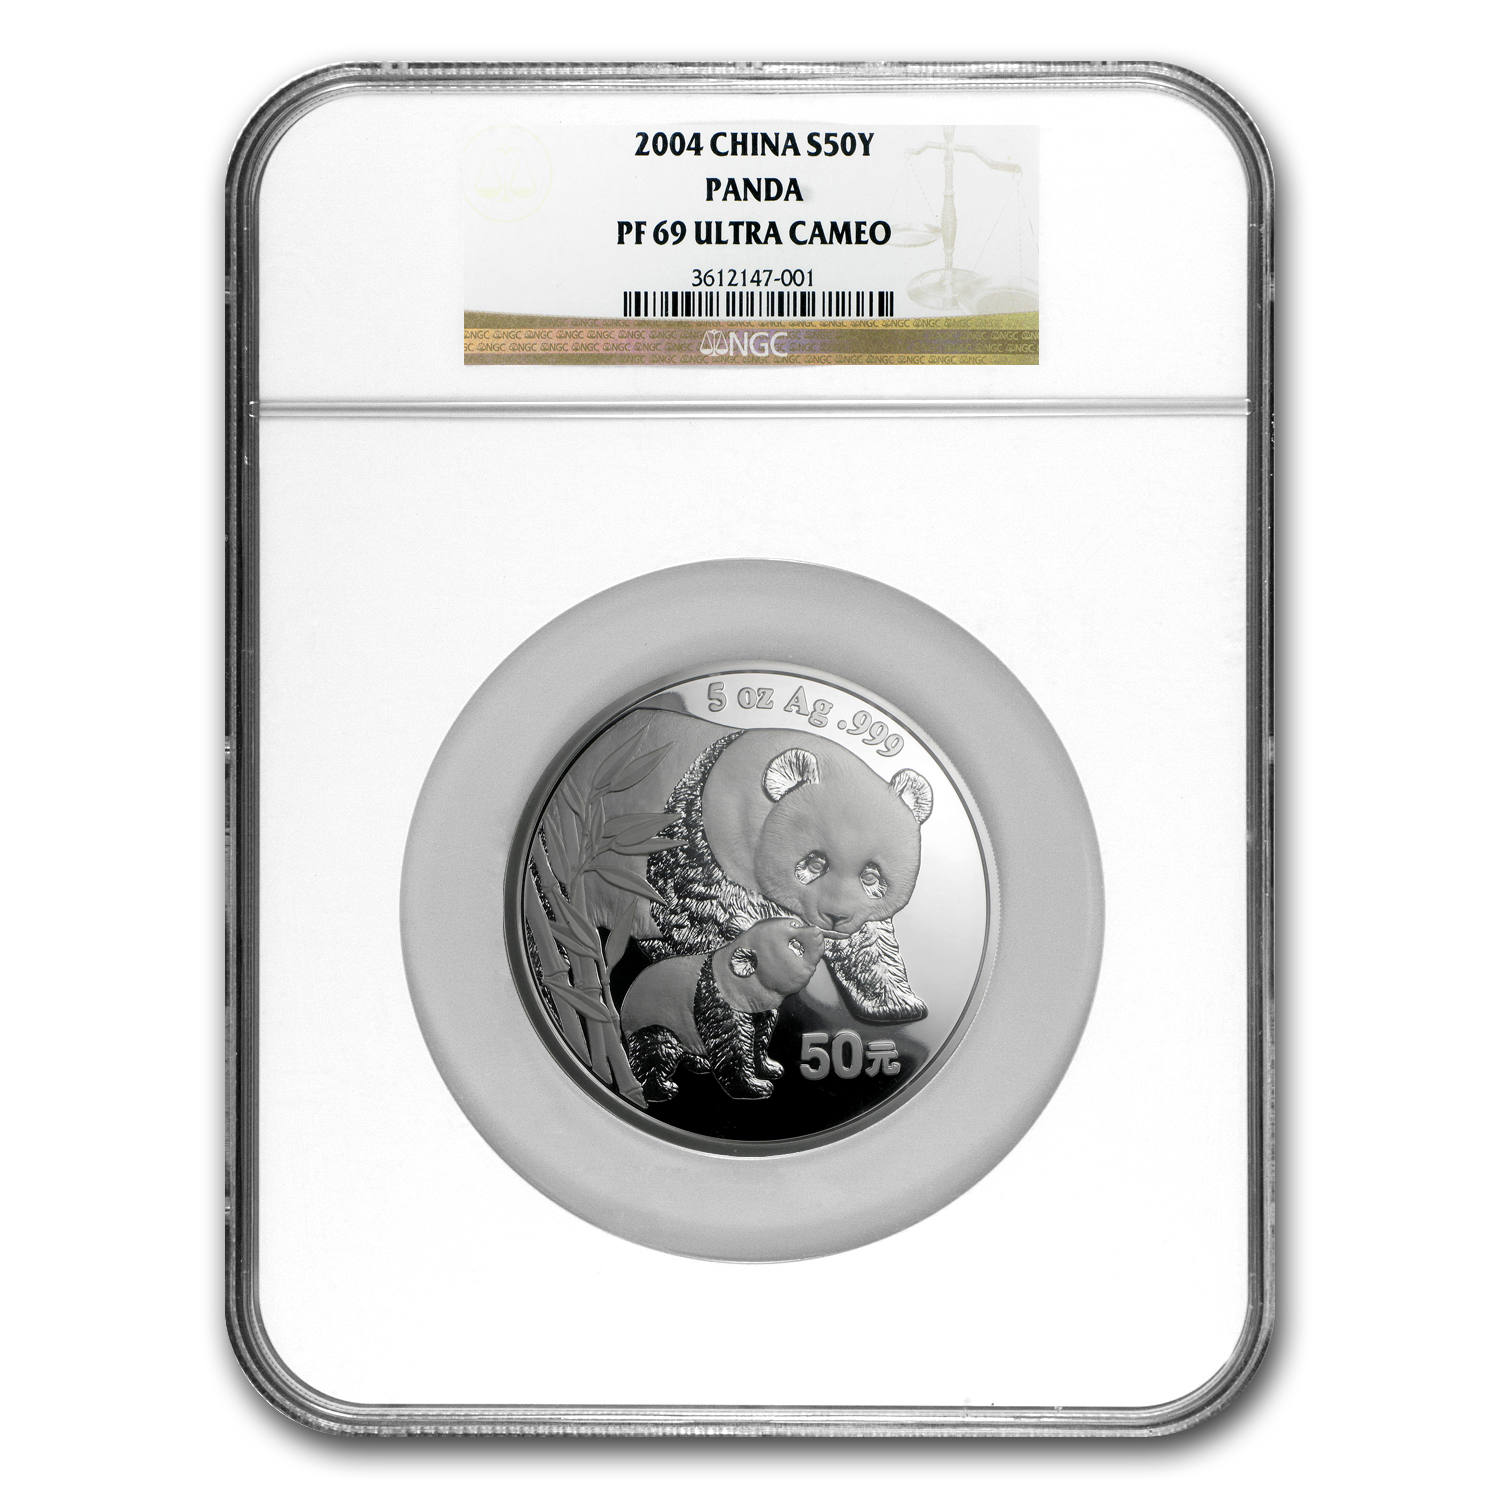 2004 China 5 oz Silver Panda PF-69 NGC